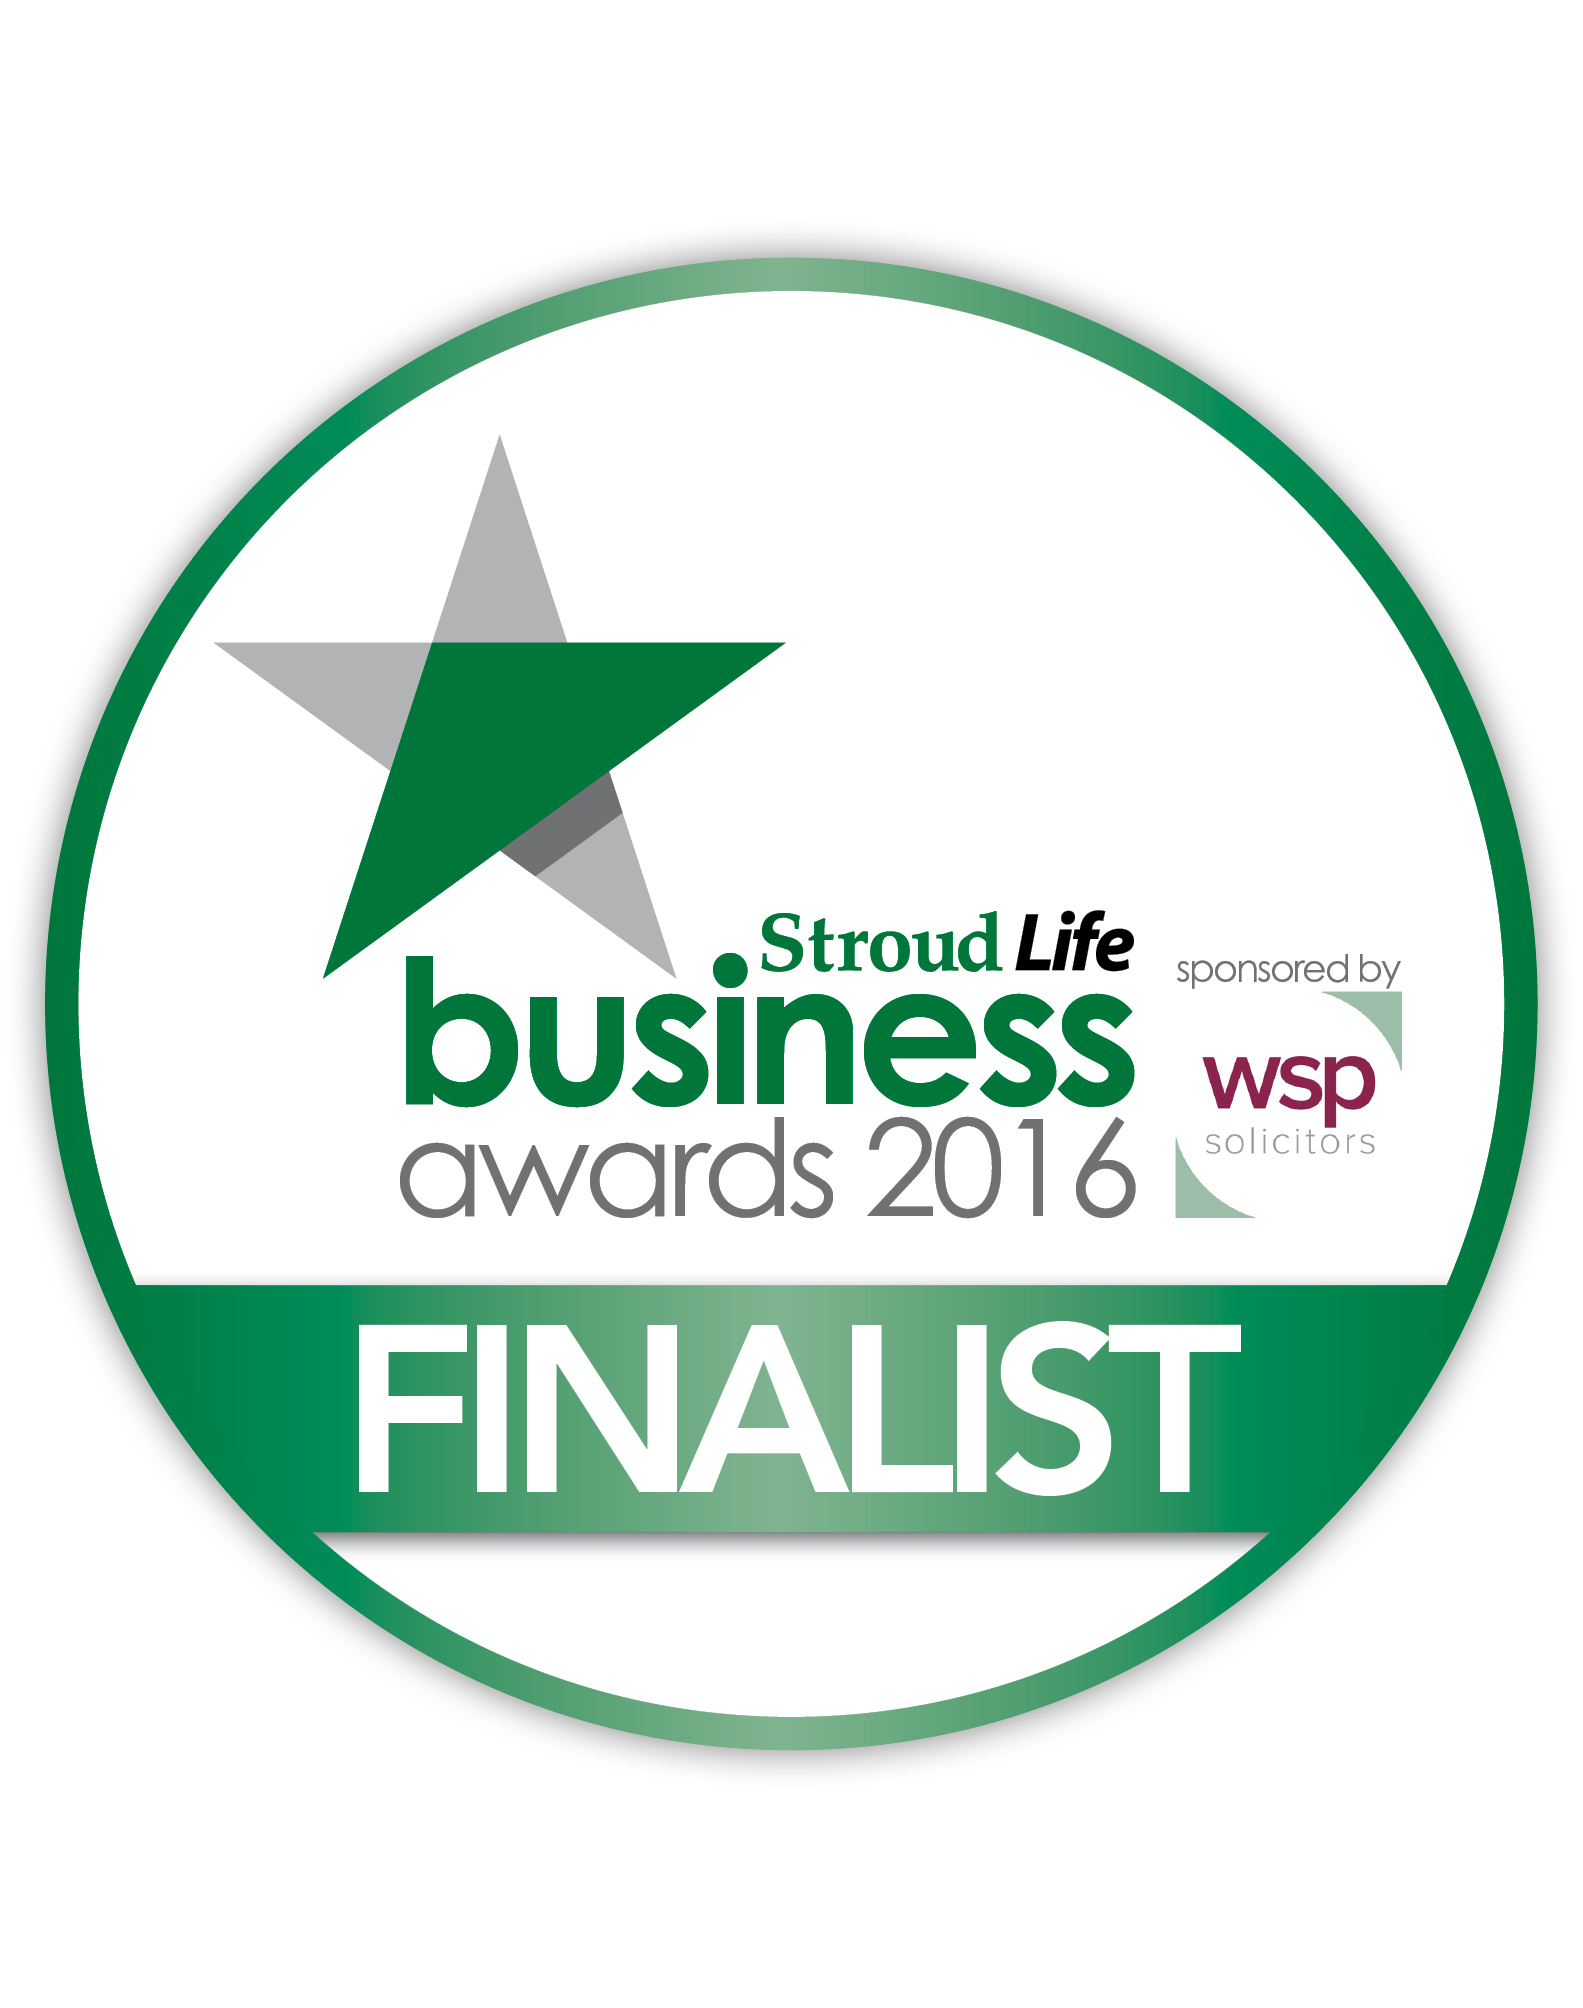 The Stroud business awards finalist badge. Out of House Publishing were a shortlisted in this category